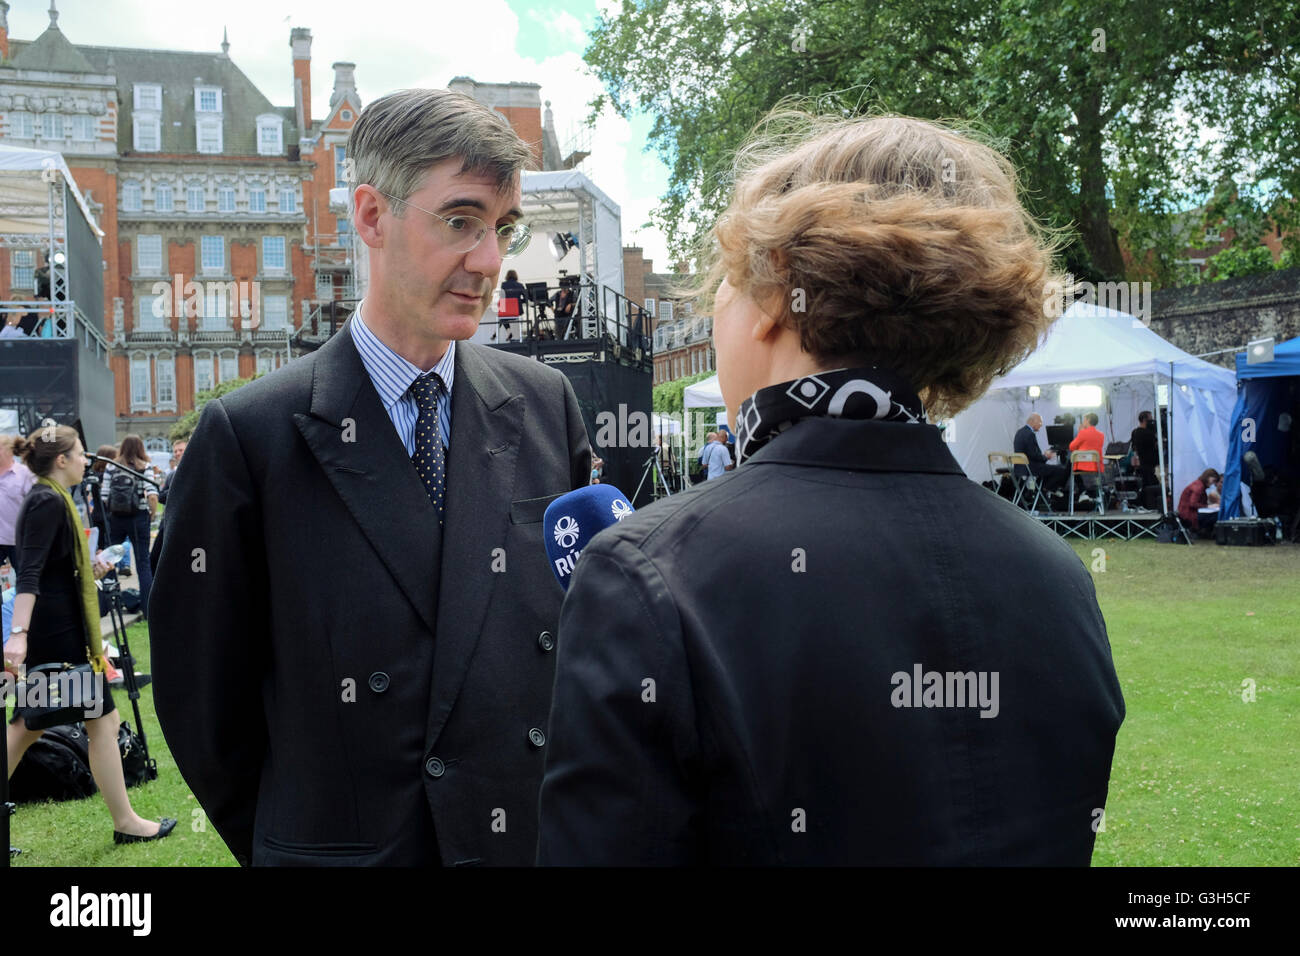 London, UK. 24 June 2016. Conservative MP, Jacob Rees-Mogg is interviewed by reporter following the result of UK - Stock Image